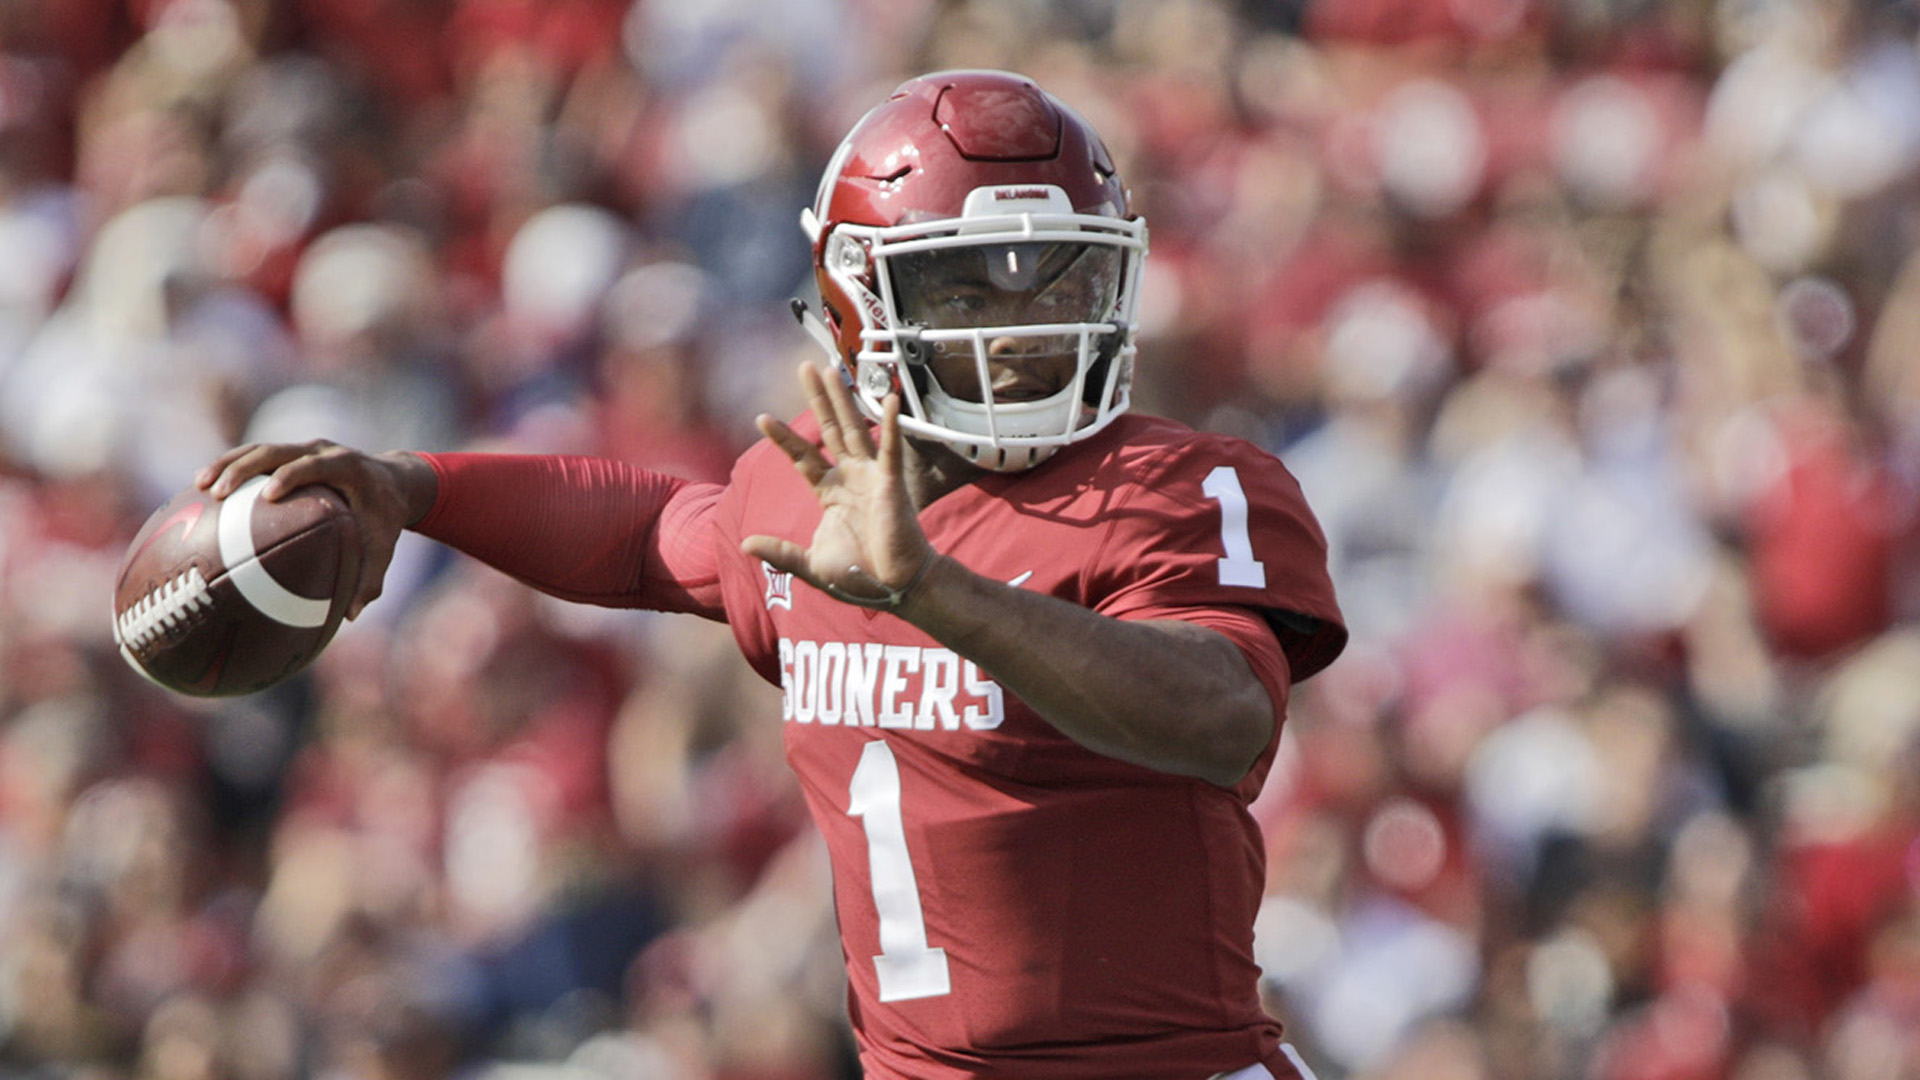 kyler-murray-on-being-drafted-by-cardinals-that-would-be-nice-for-sure